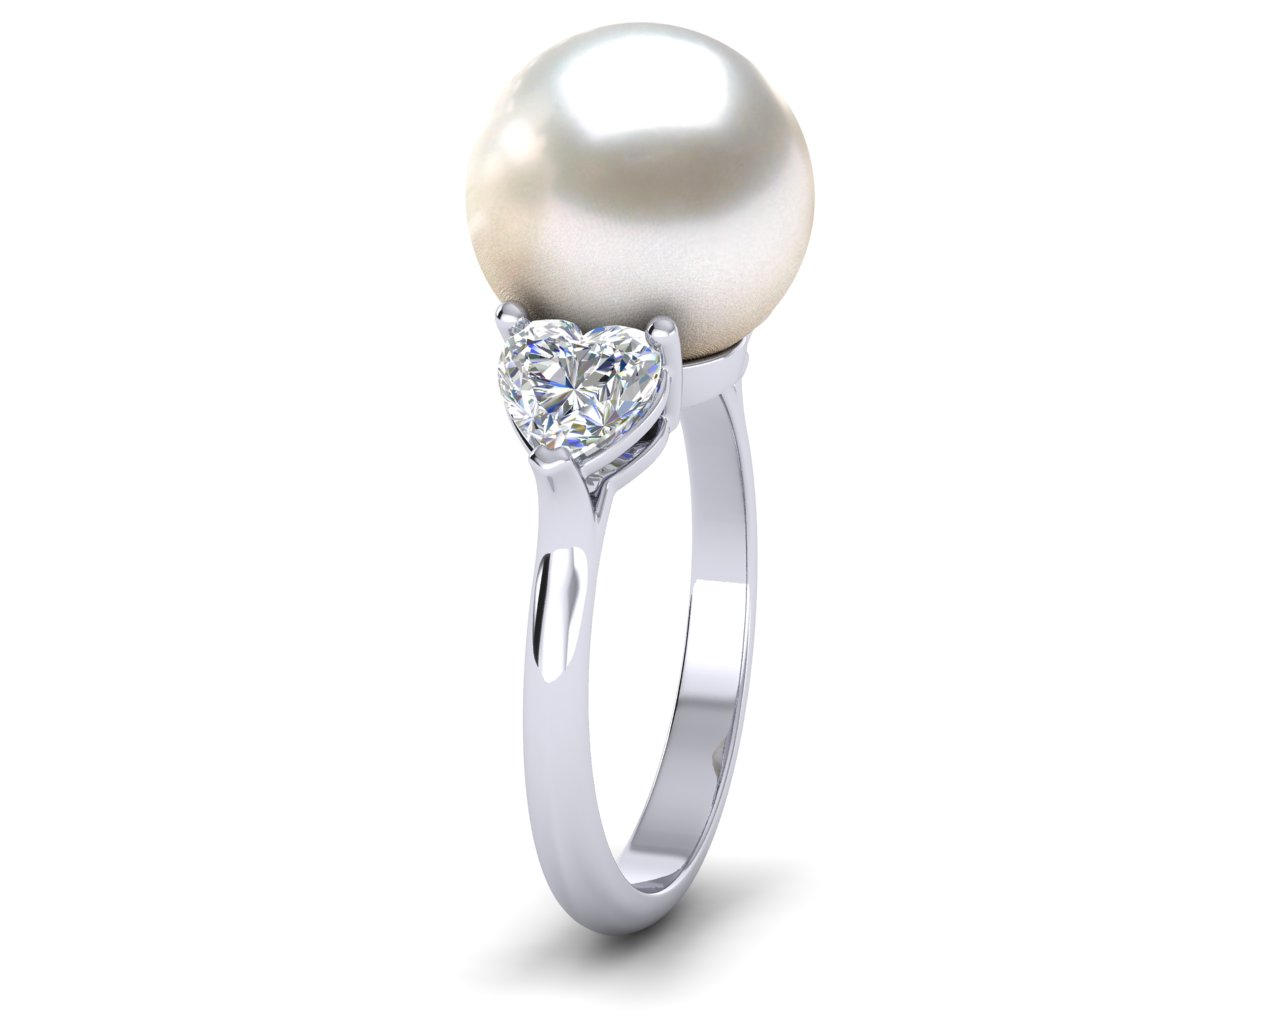 Gold Heart Ring Gold Heart Gold Heart Adjustable Freshwater Pearl Ring Sterling Silver Heart Pearl Ring Freshwater Pearl Heart Ring